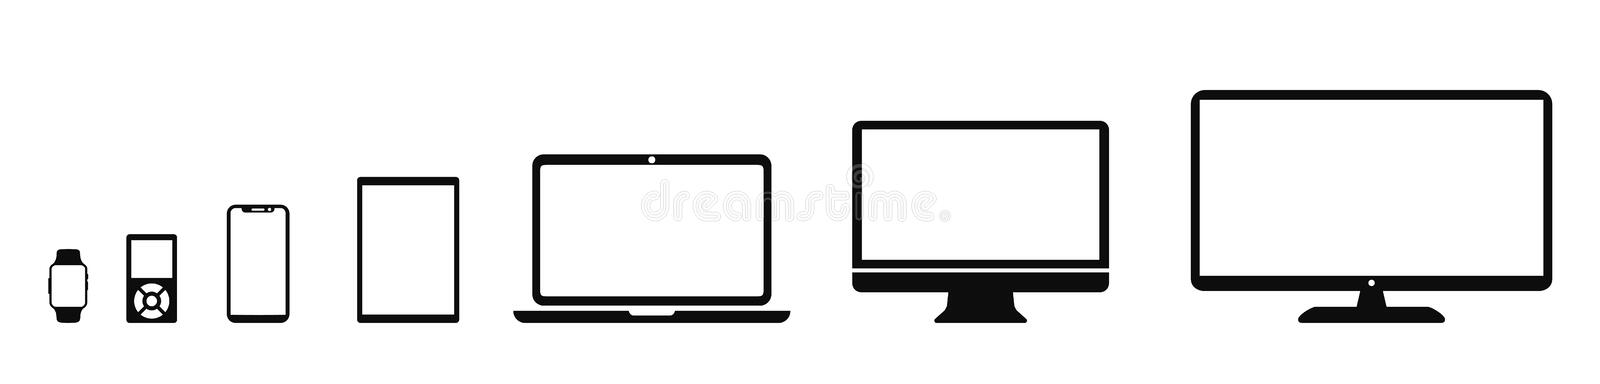 Set technology devices icon: television, computer, laptop, tablet, smartphone, mp3 player, smartwatch icons for web development royalty free illustration